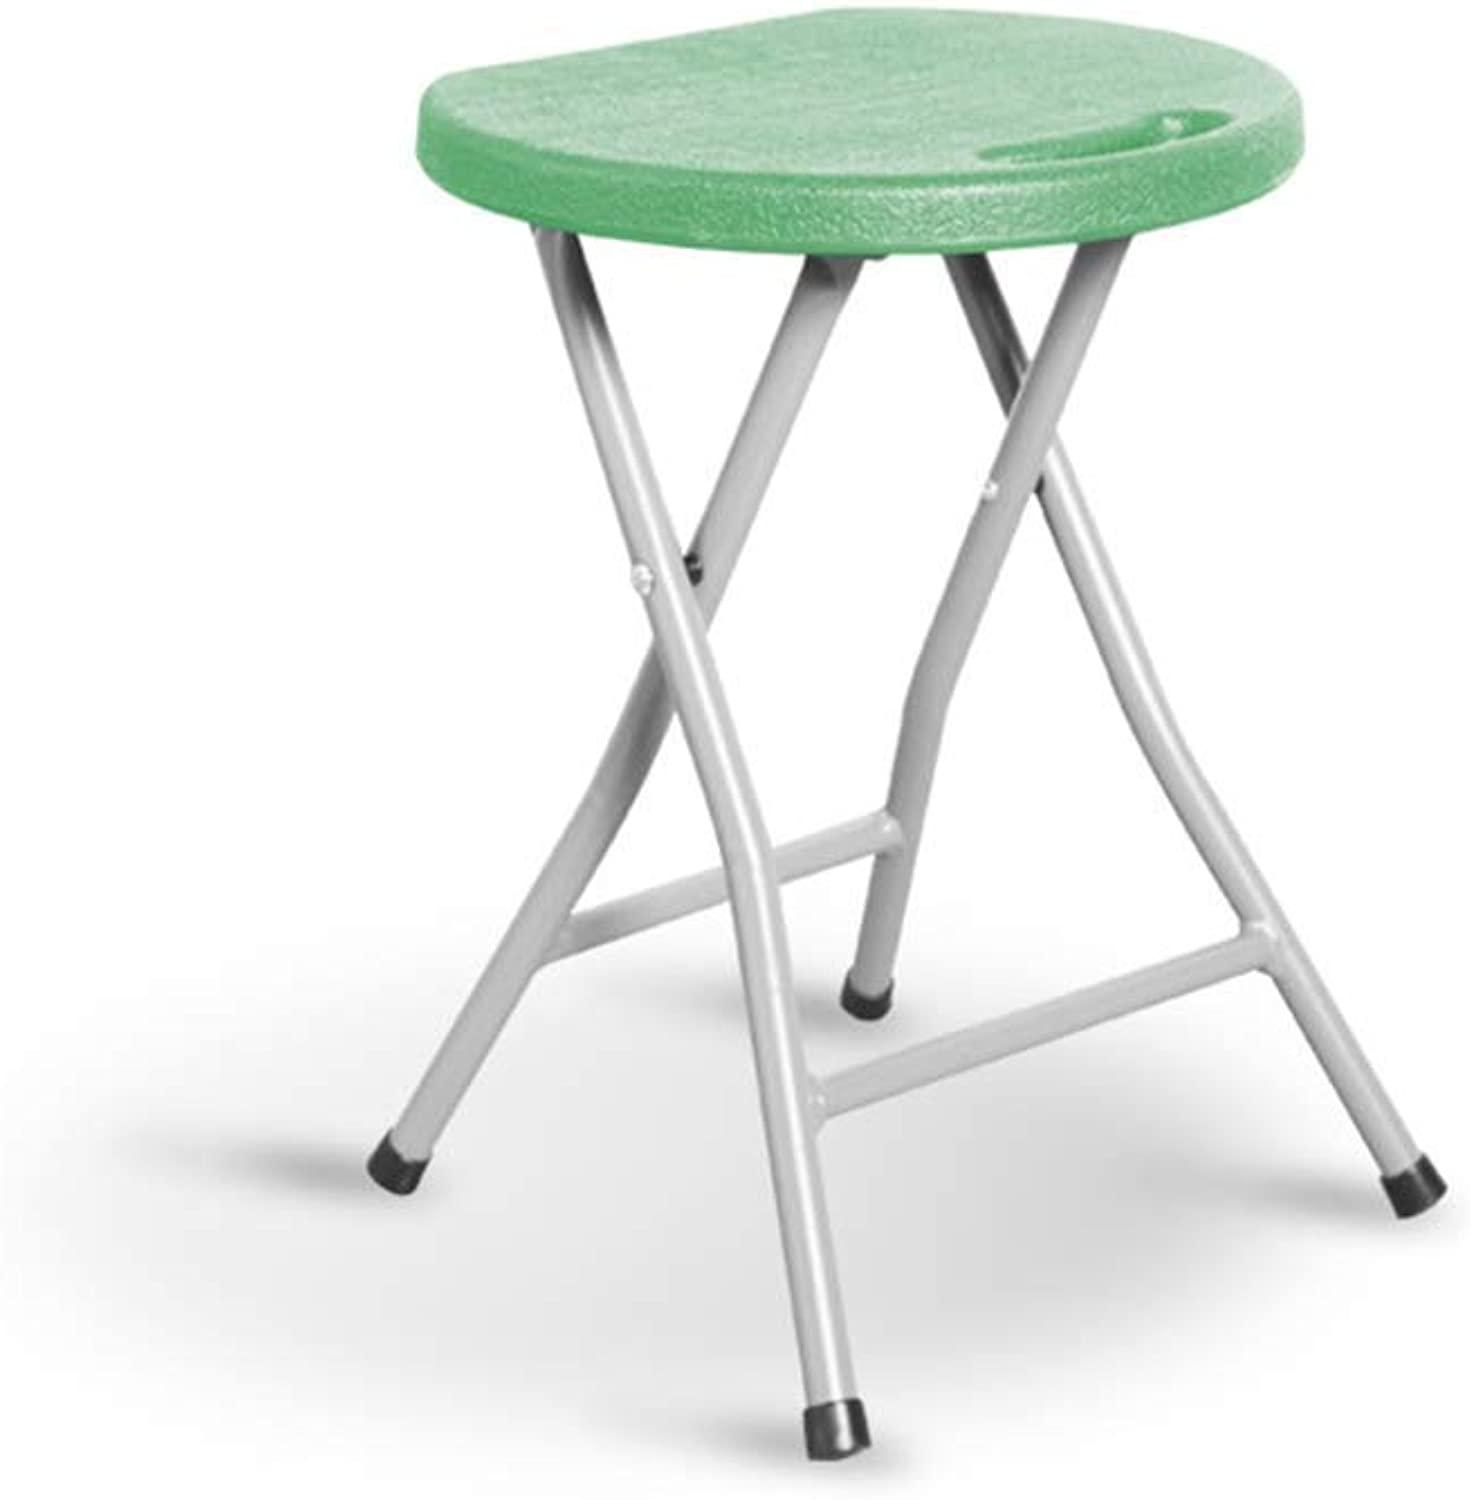 Lil Folding Portable Chair Home Dining Table Adult High Stool Simple Chair Thickening Creativity Lounge Chair (color   Green, Size   45  33cm)